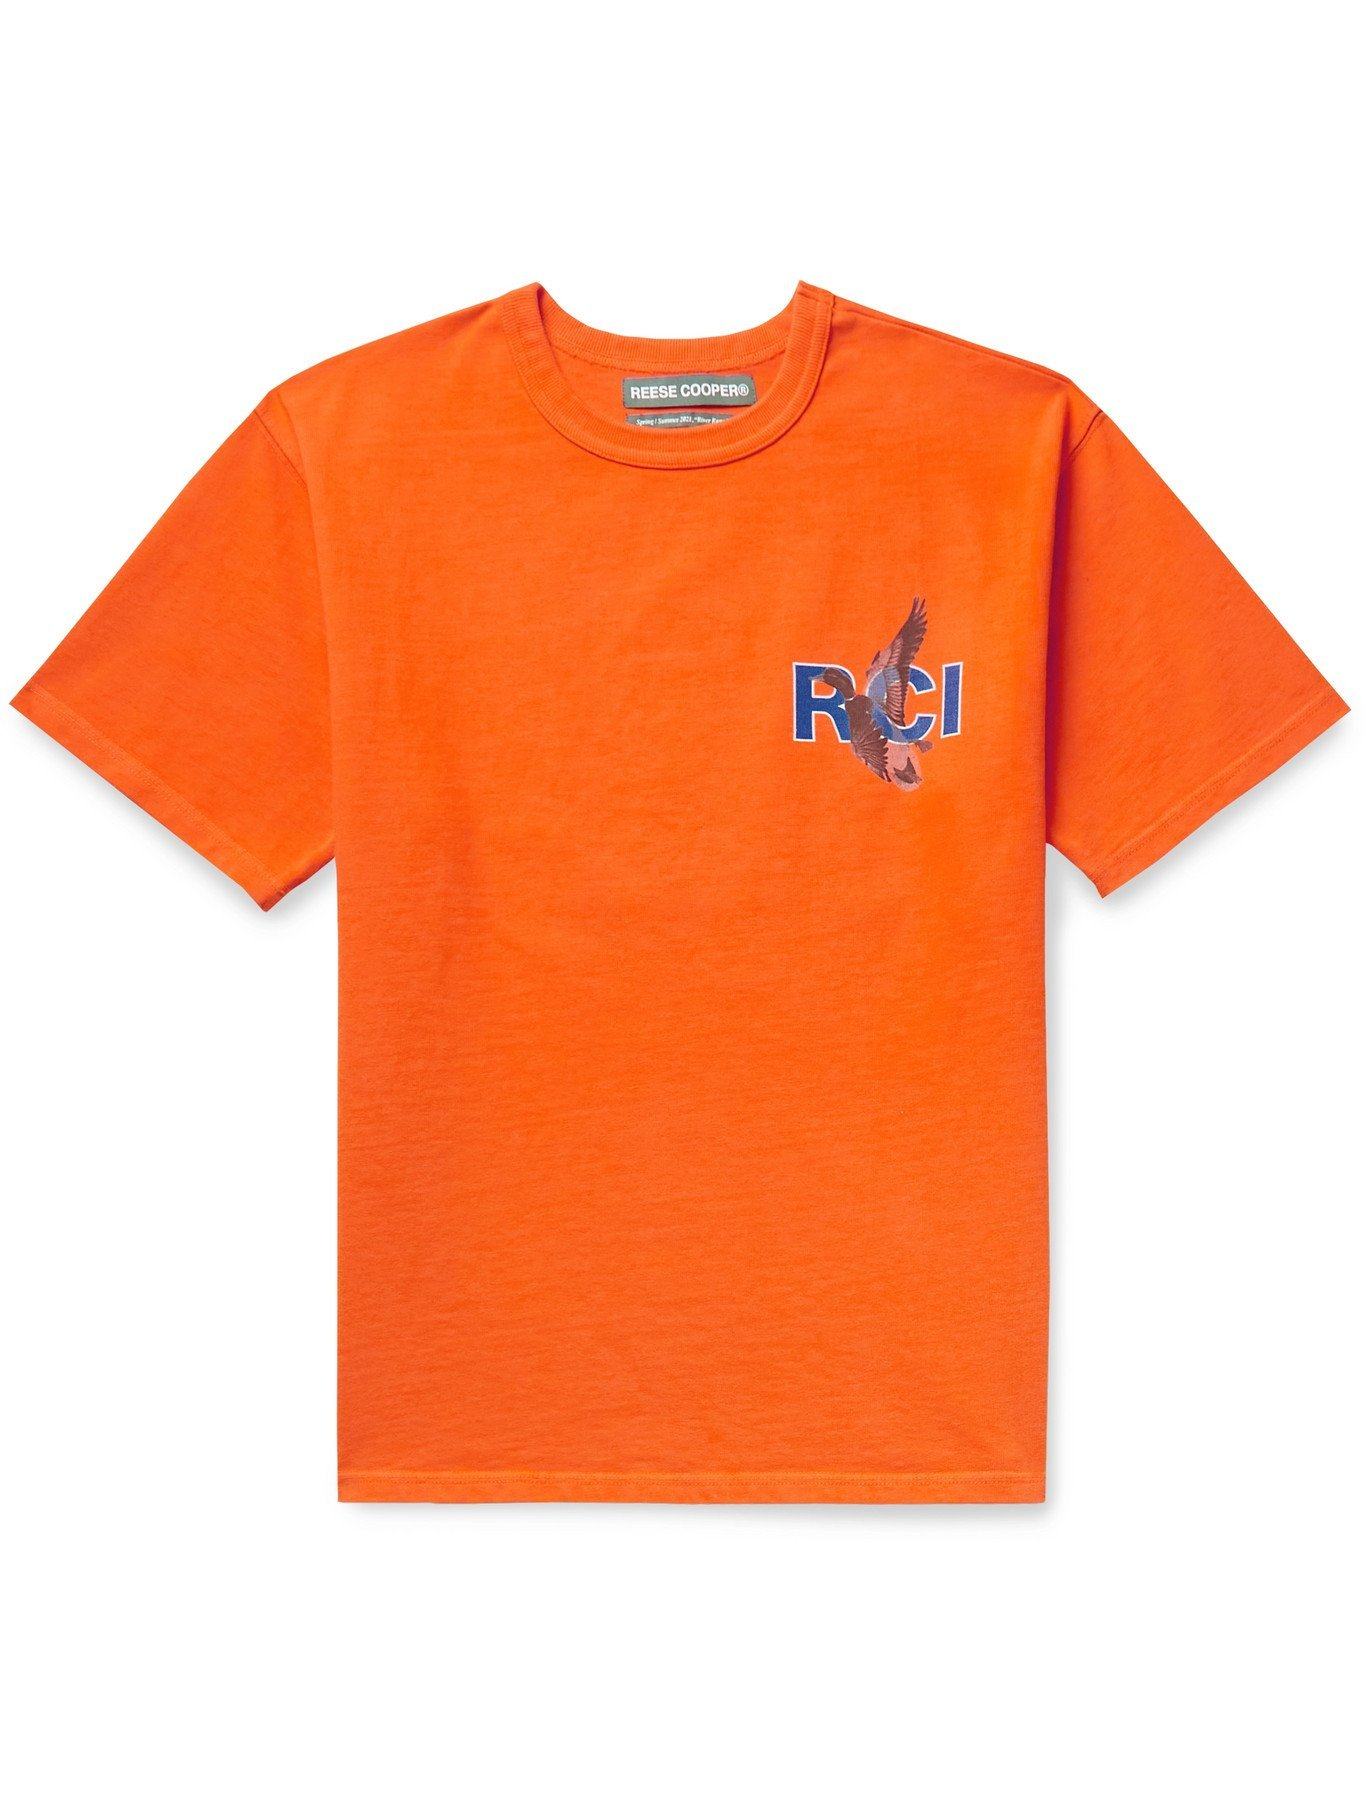 Photo: REESE COOPER® - Printed Cotton-Jersey T-shirt - Orange - S